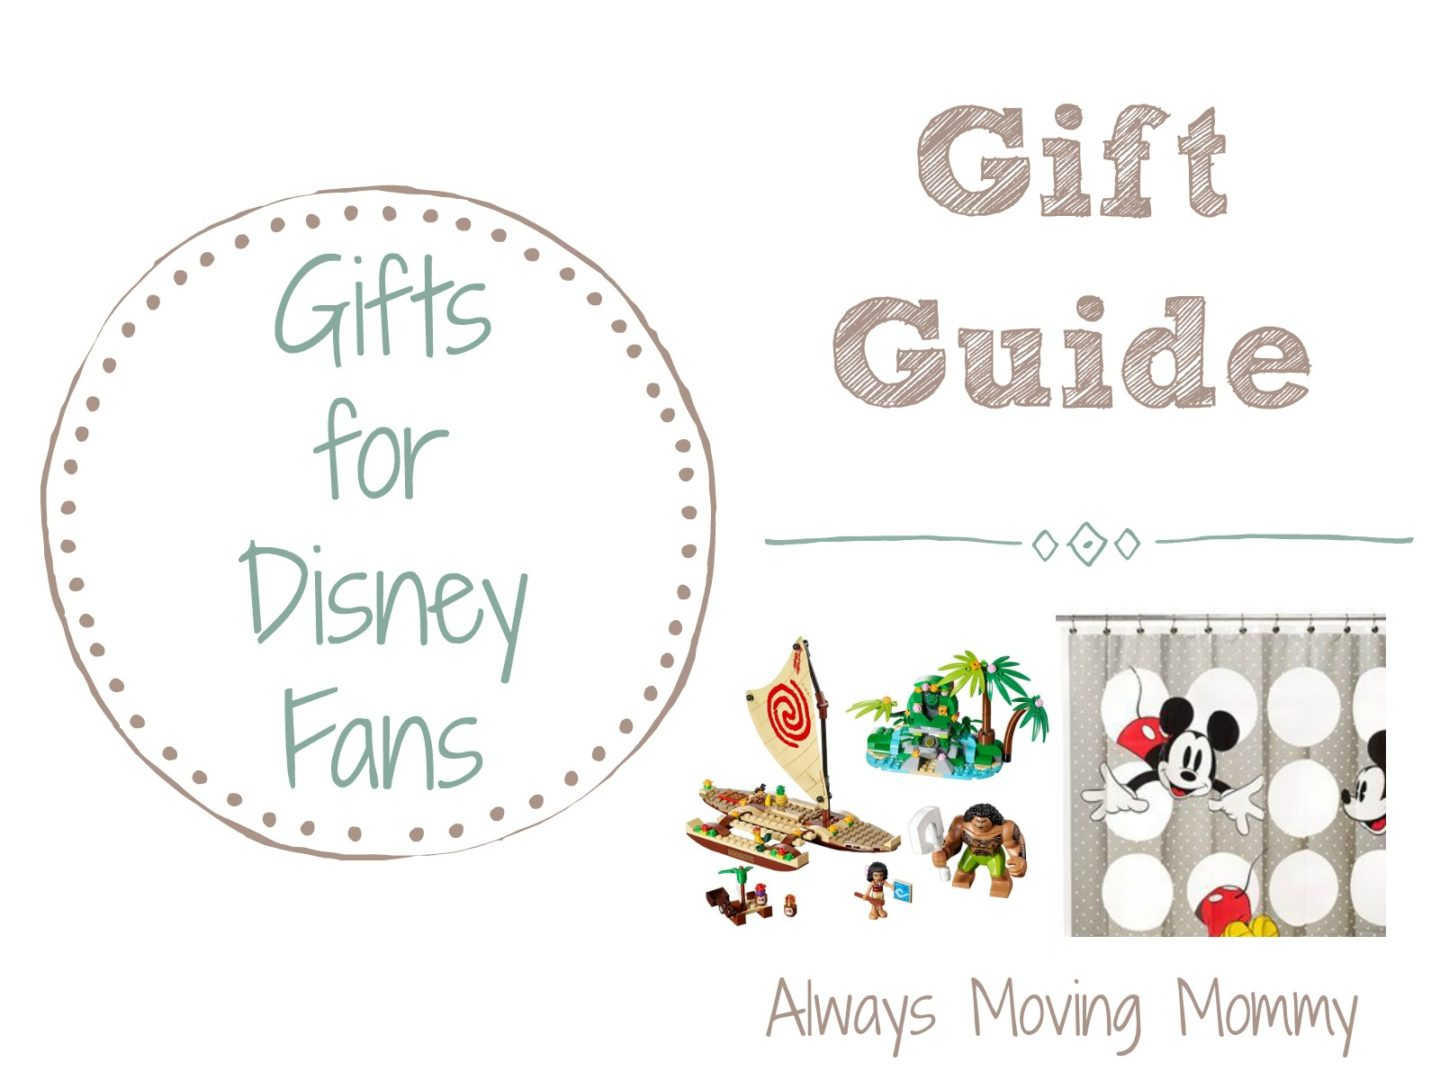 Gift Guide: Gift Ideas for Disney Fans | Always Moving Mommy | If there's a Disney fan on your list, you need these ideas!